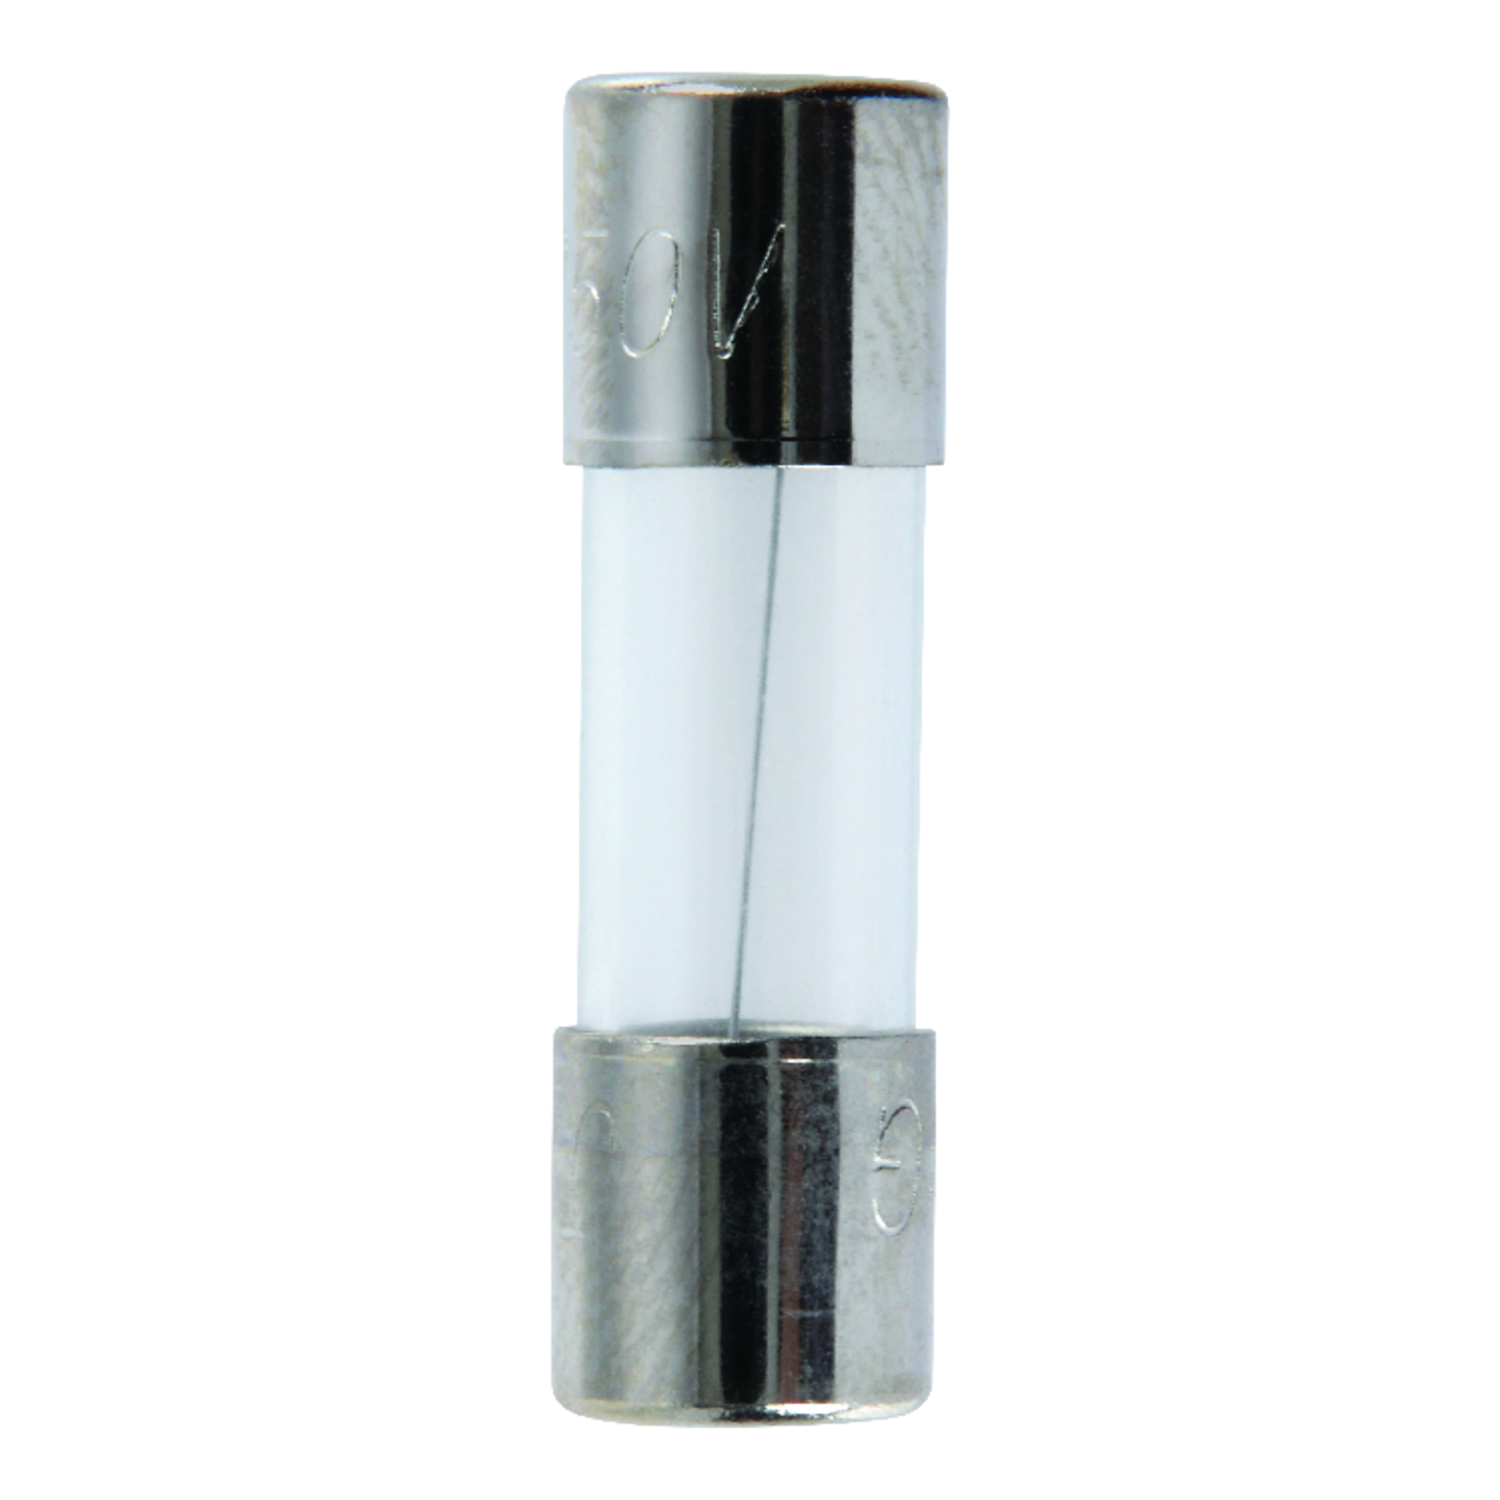 Jandorf  AGW  3 amps 32 volts Glass  Fast Acting Fuse  4 pk